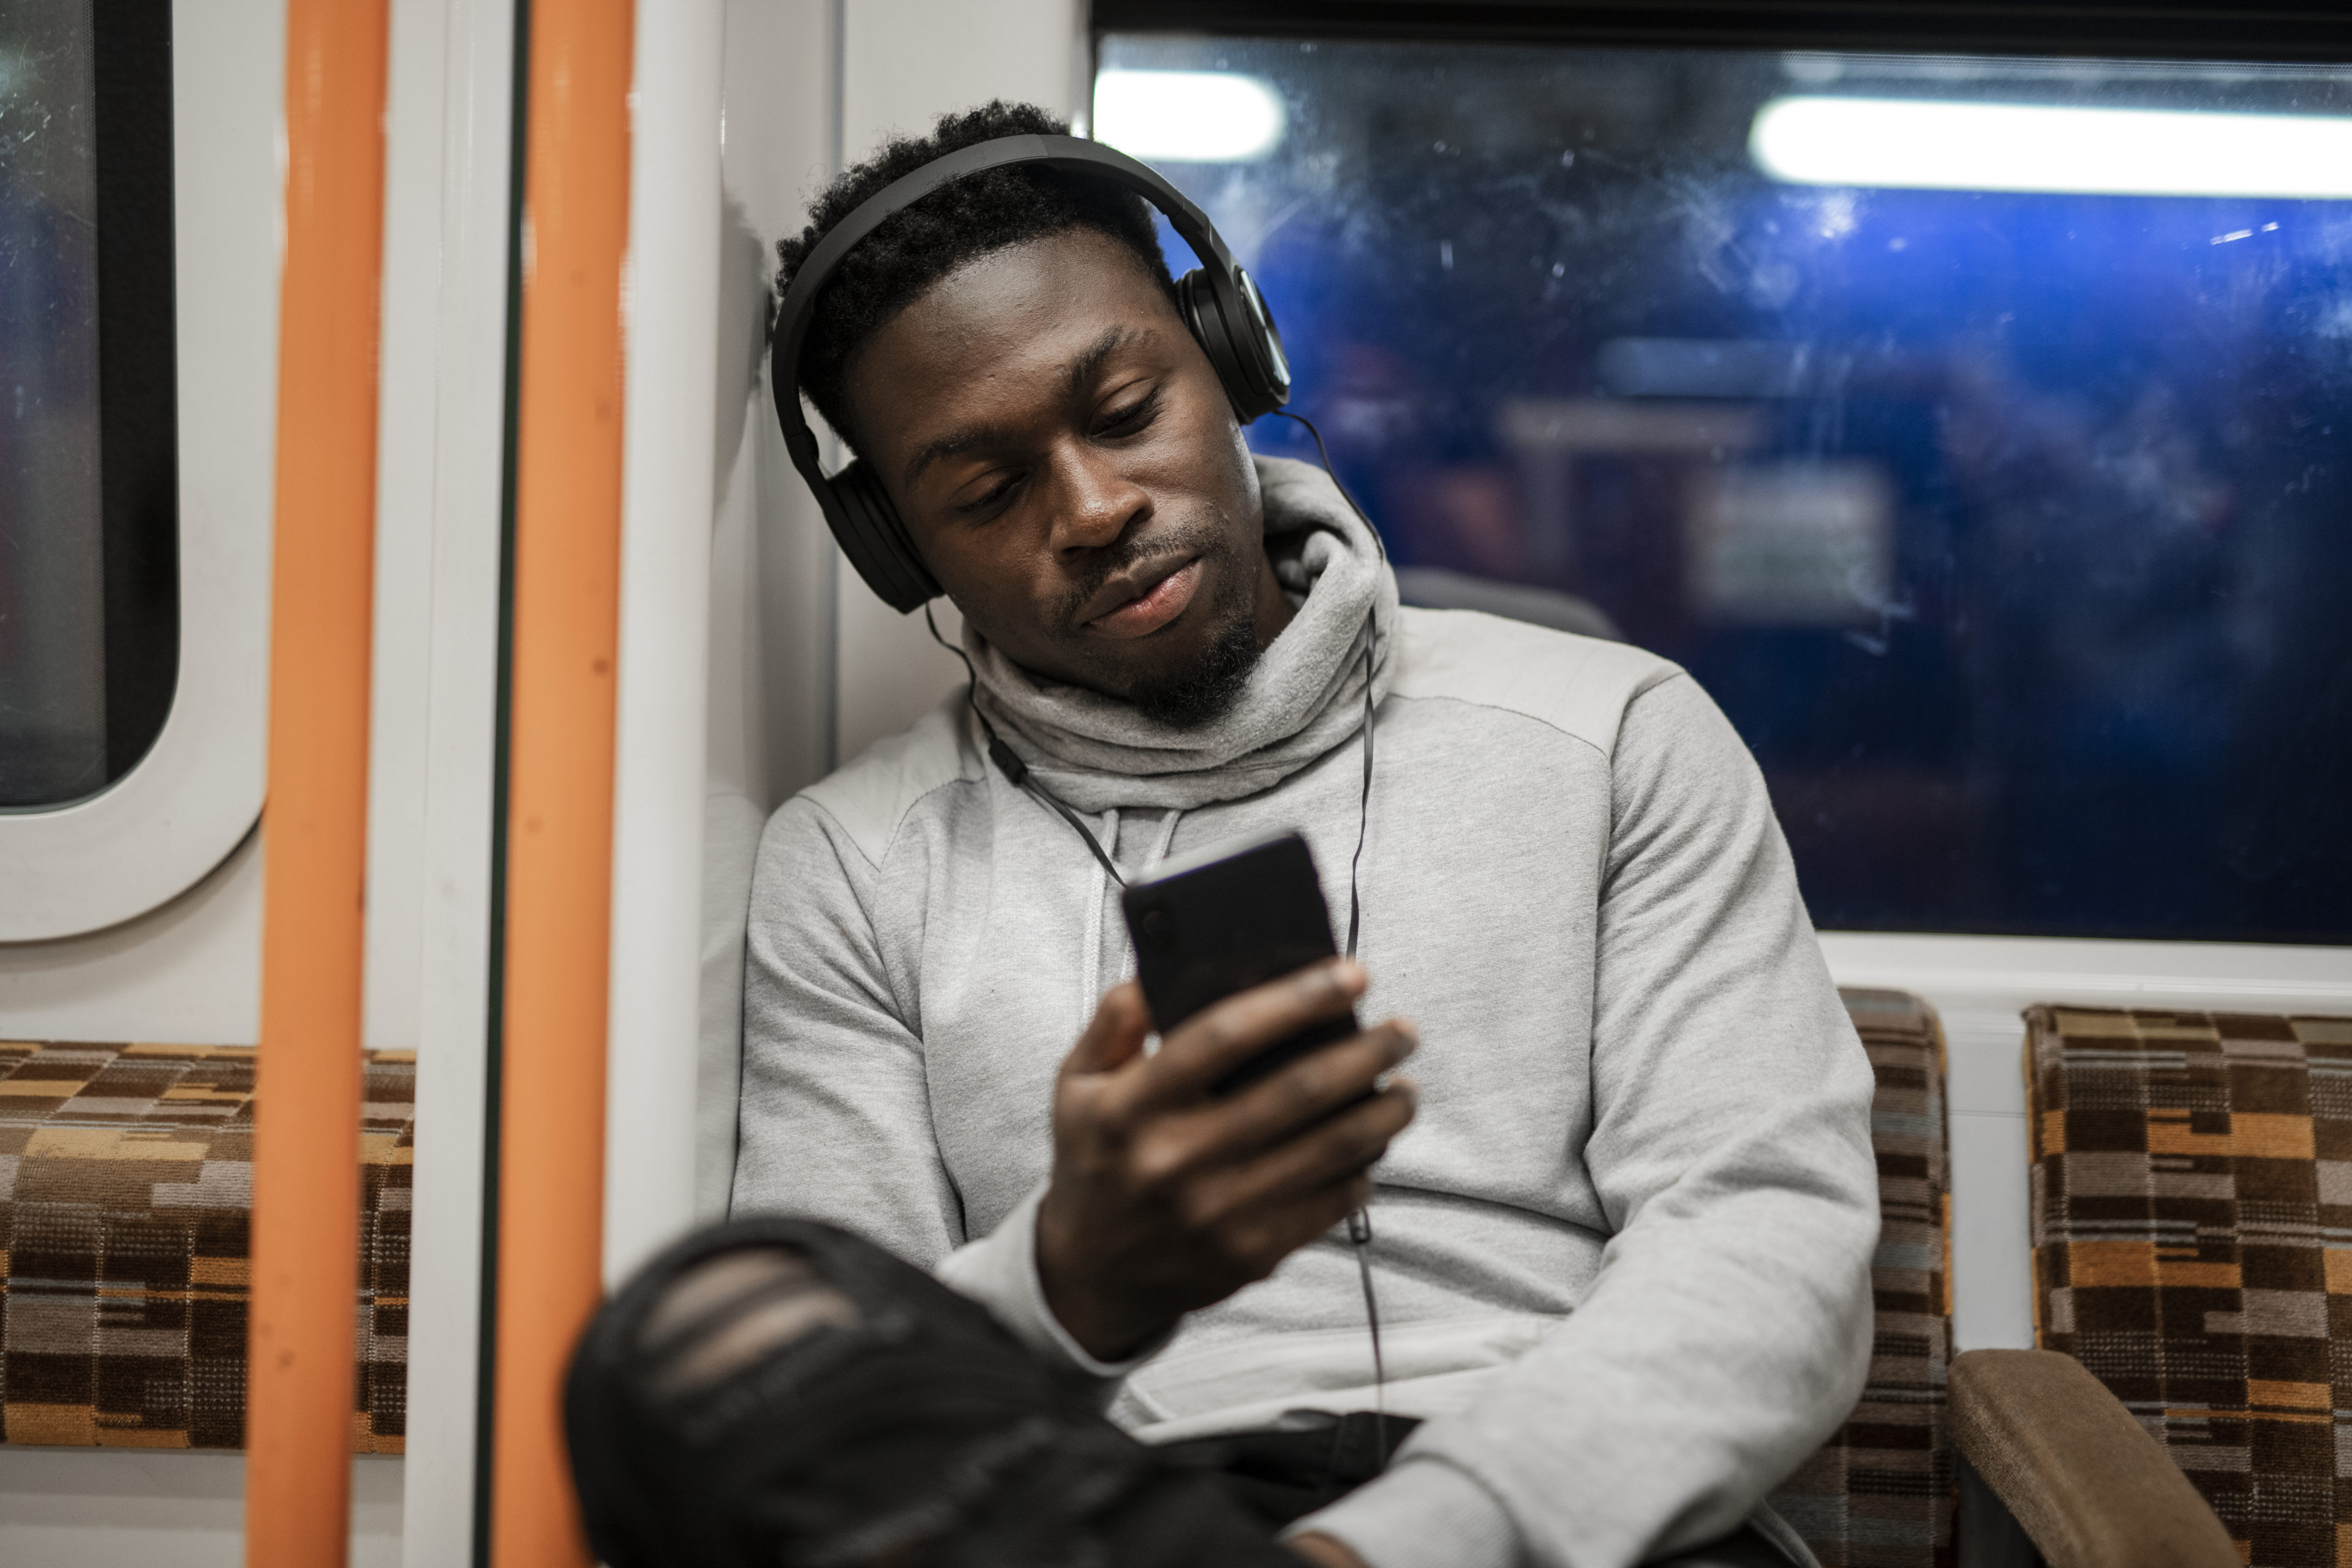 Man completing mobile safety training from his phone